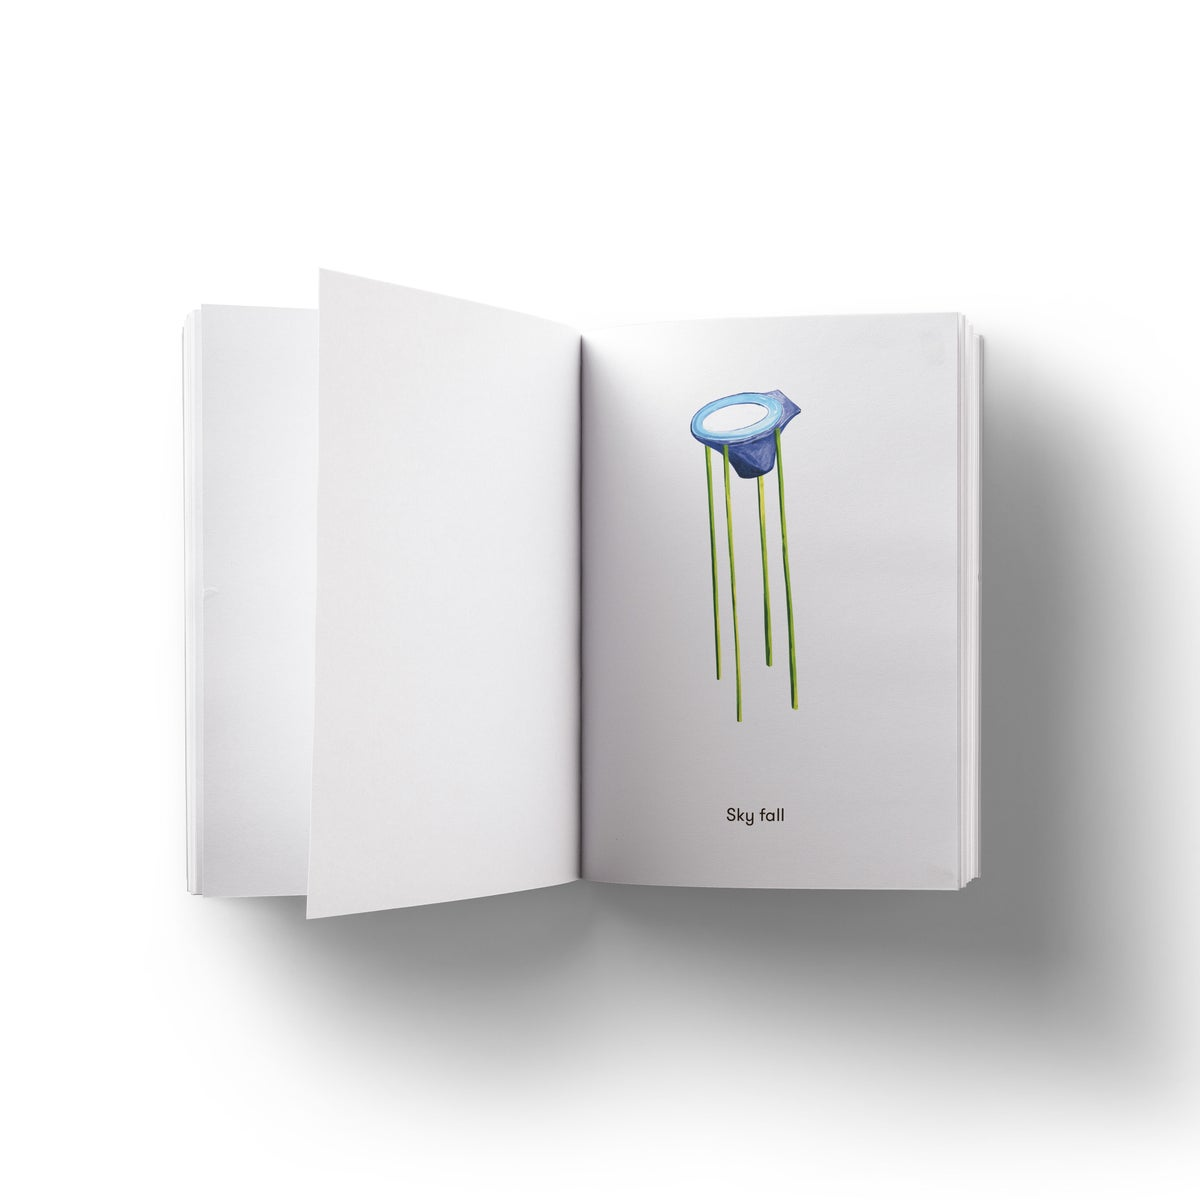 Image of Toilet Book